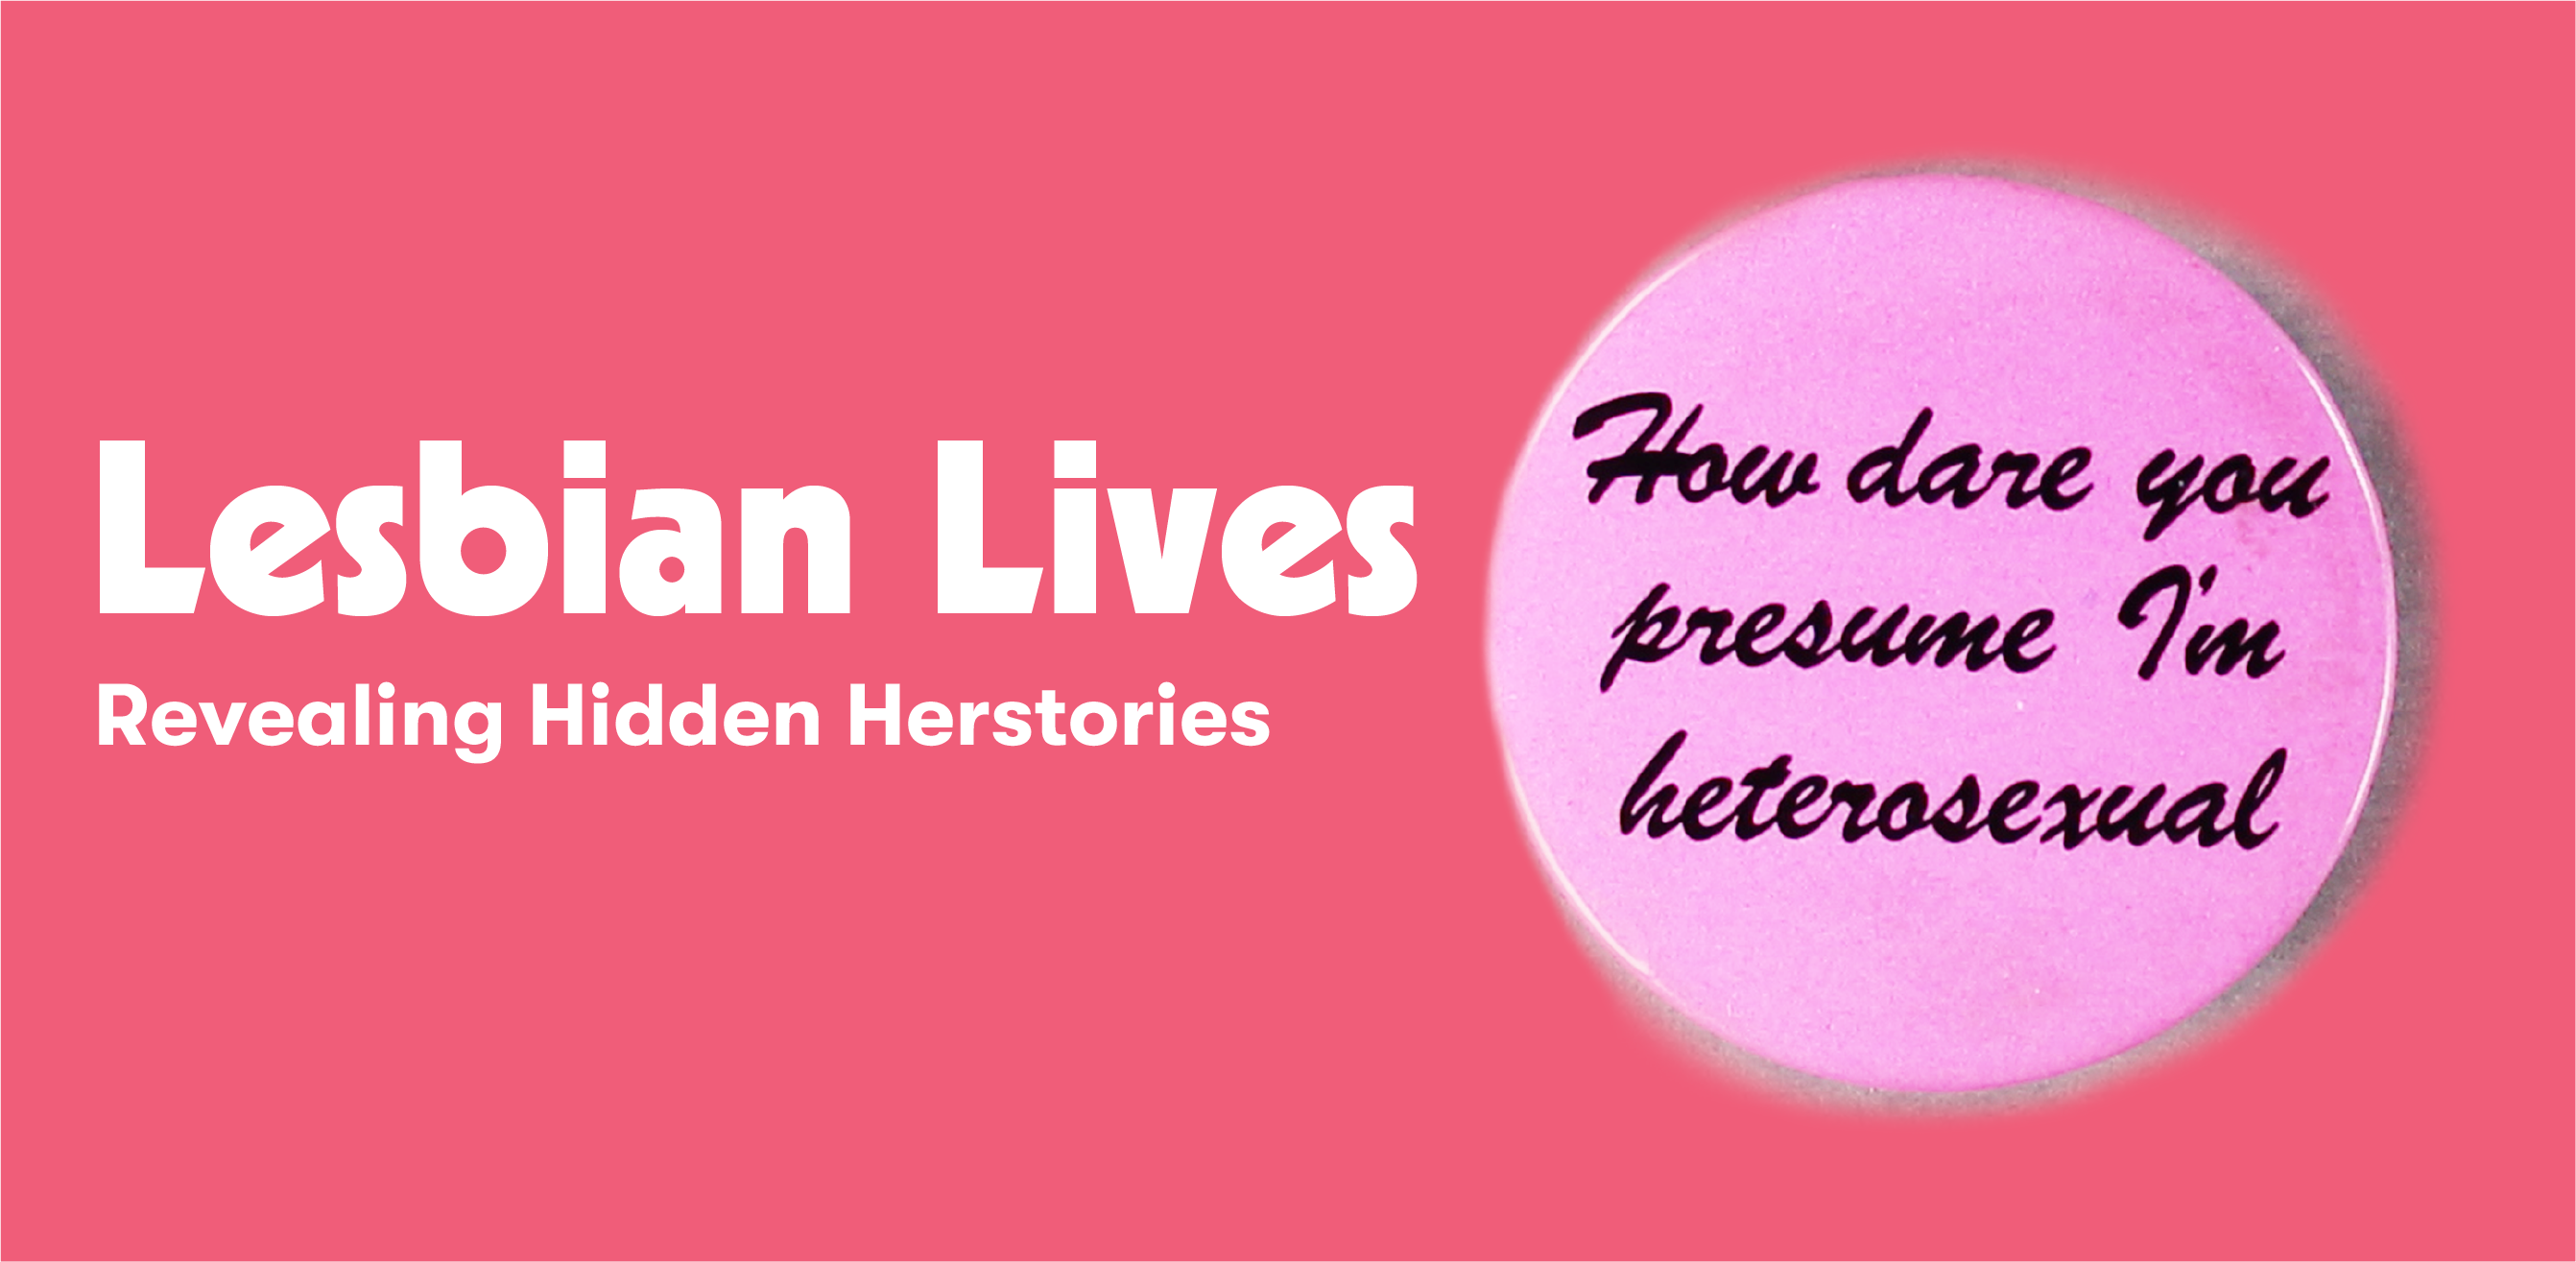 Banner with text Lesbian Lives: Revealing Hidden Herstories in bold white on a rich pink background, with a photo of a badge with the slogan 'How dare you presume I'm heterosexual' in black script on a pale pink background